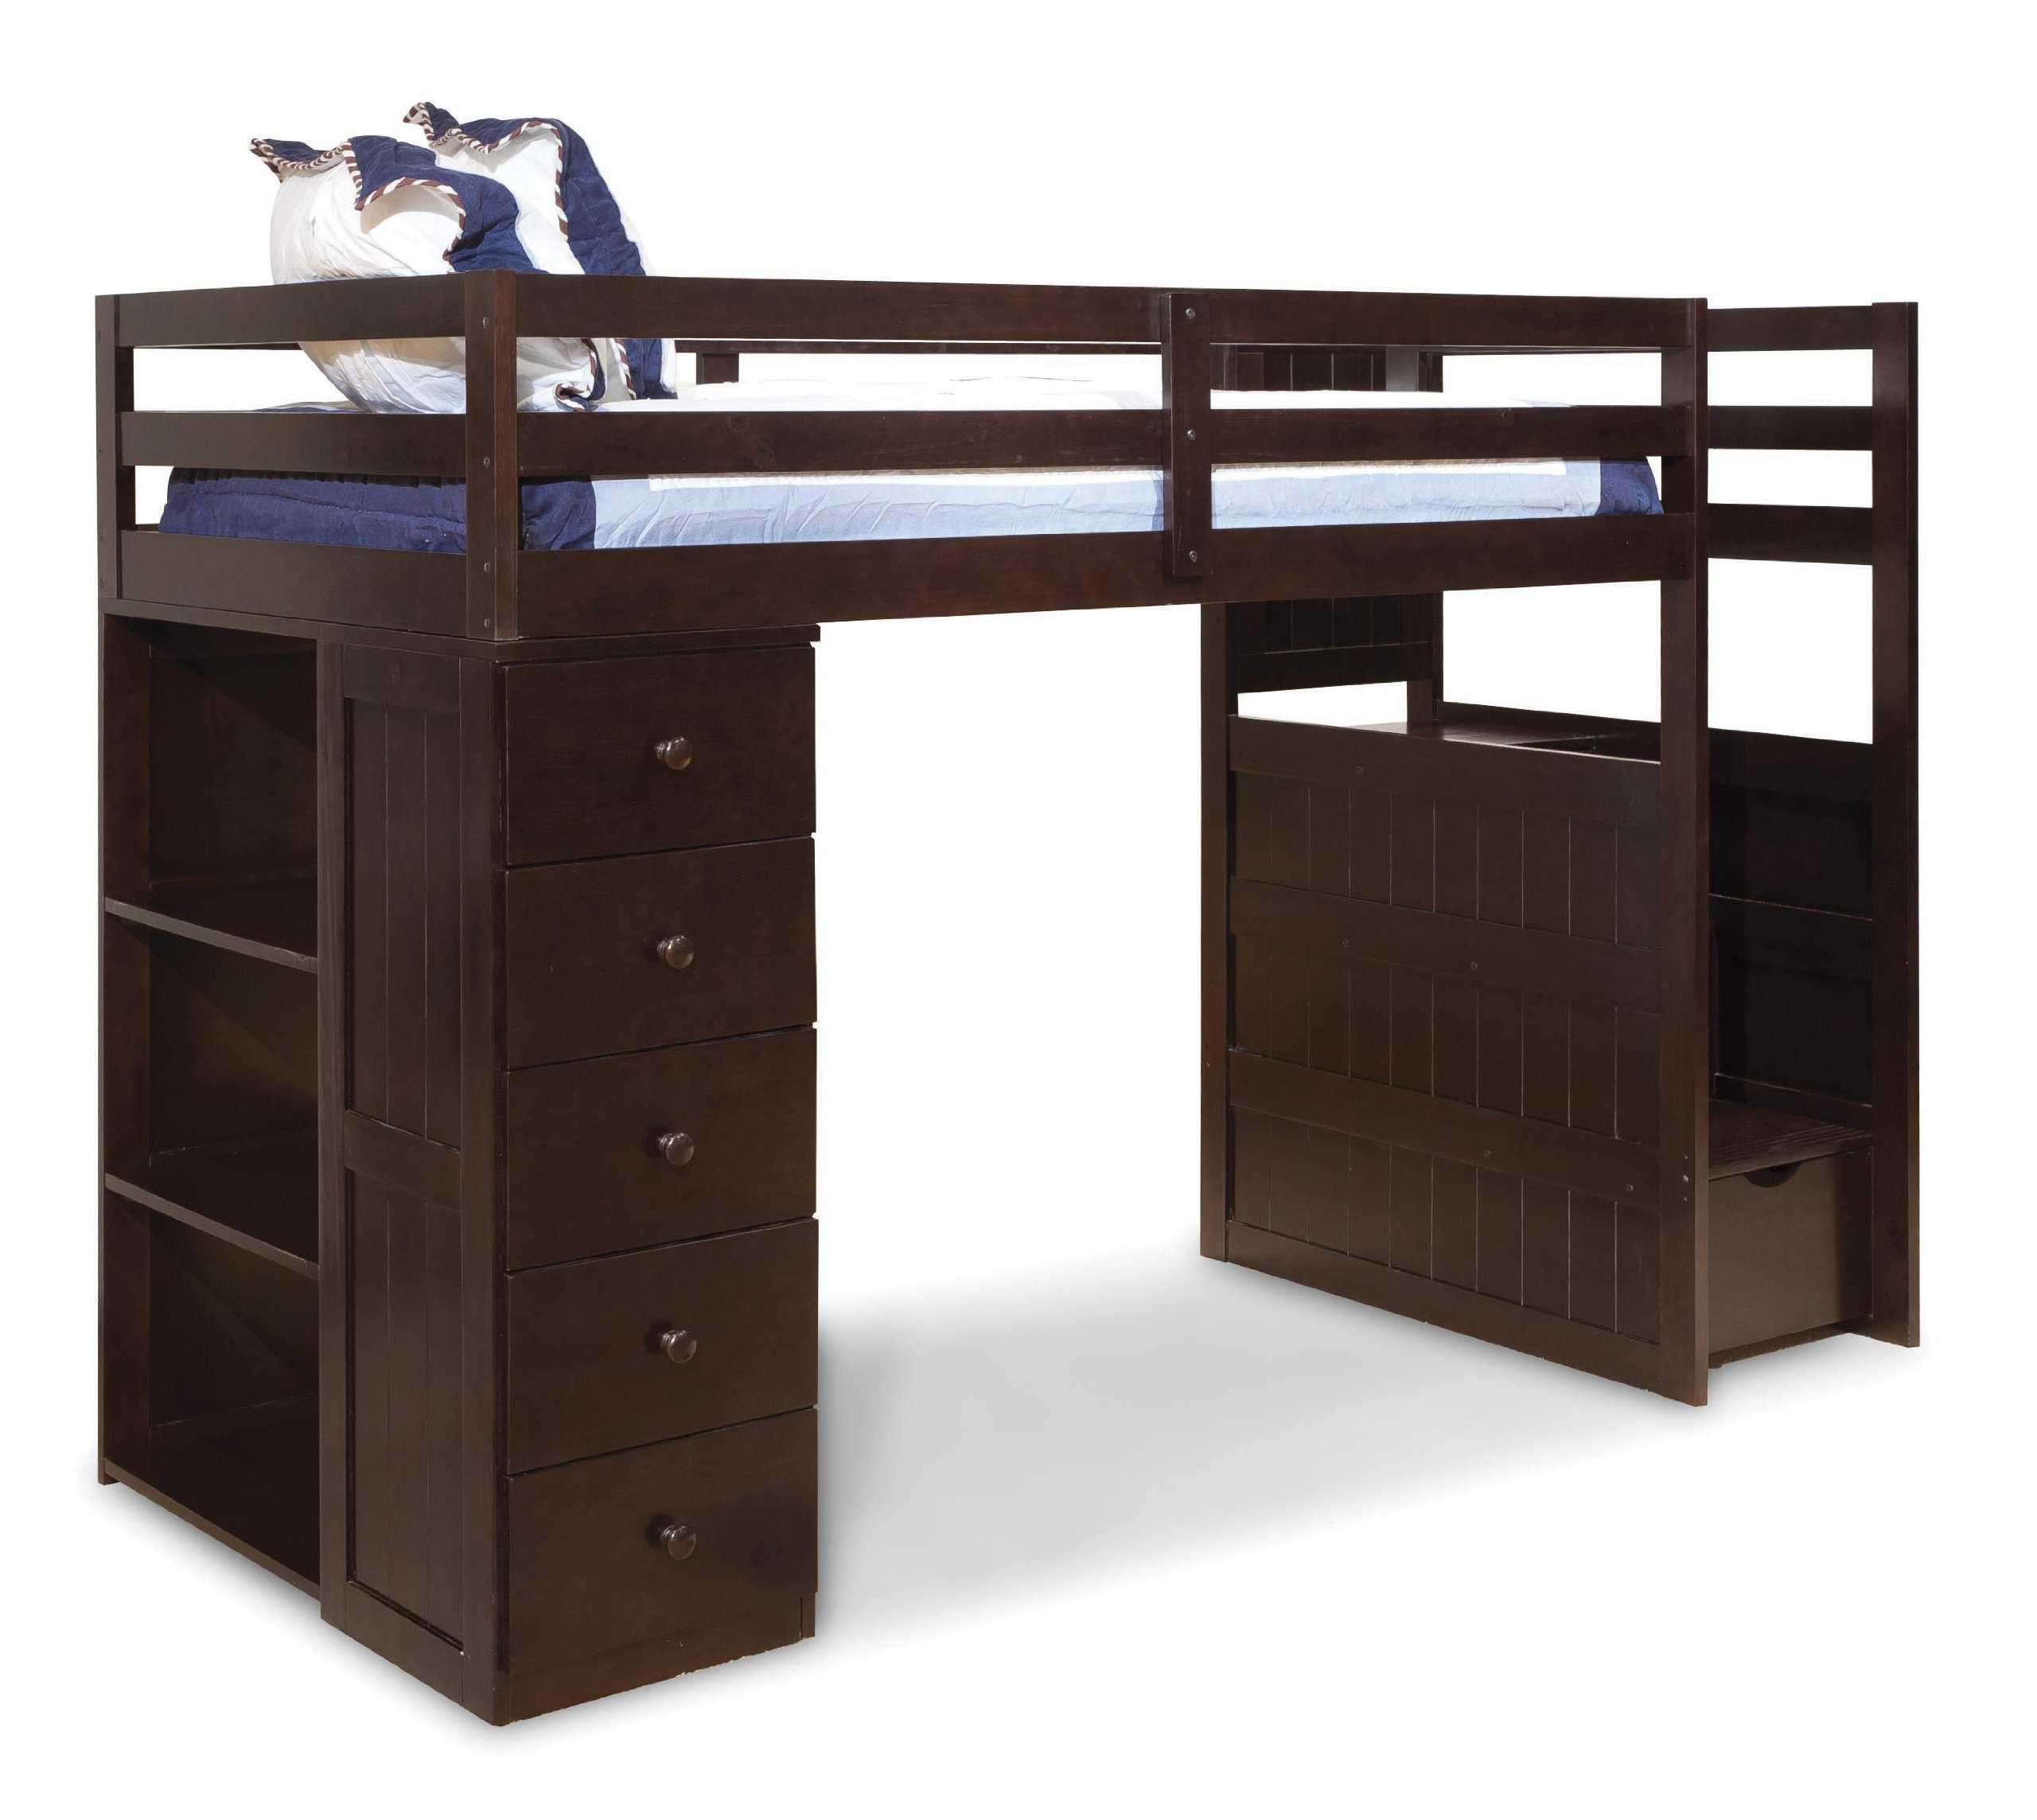 Canwood Mountaineer Loft Bed With Storage Tower And Built In Stairs Drawers,  Twin, Espresso